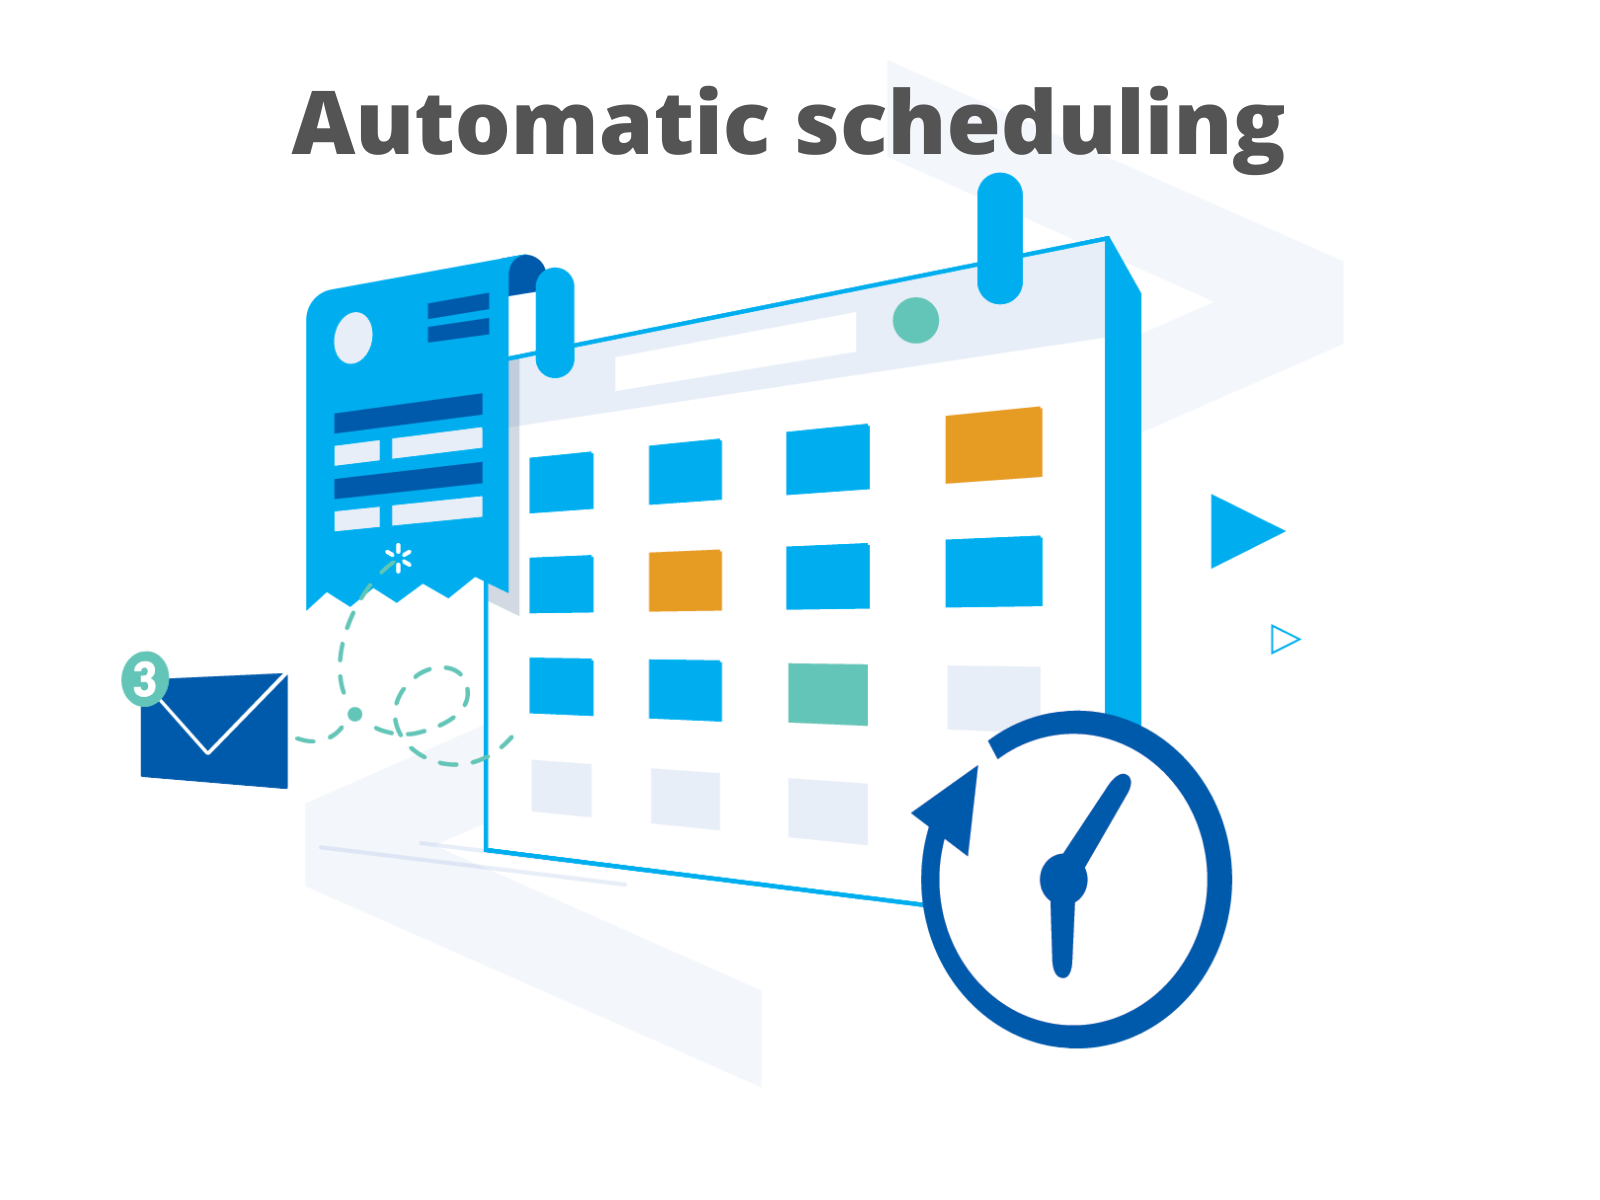 Automate scheduling inventory